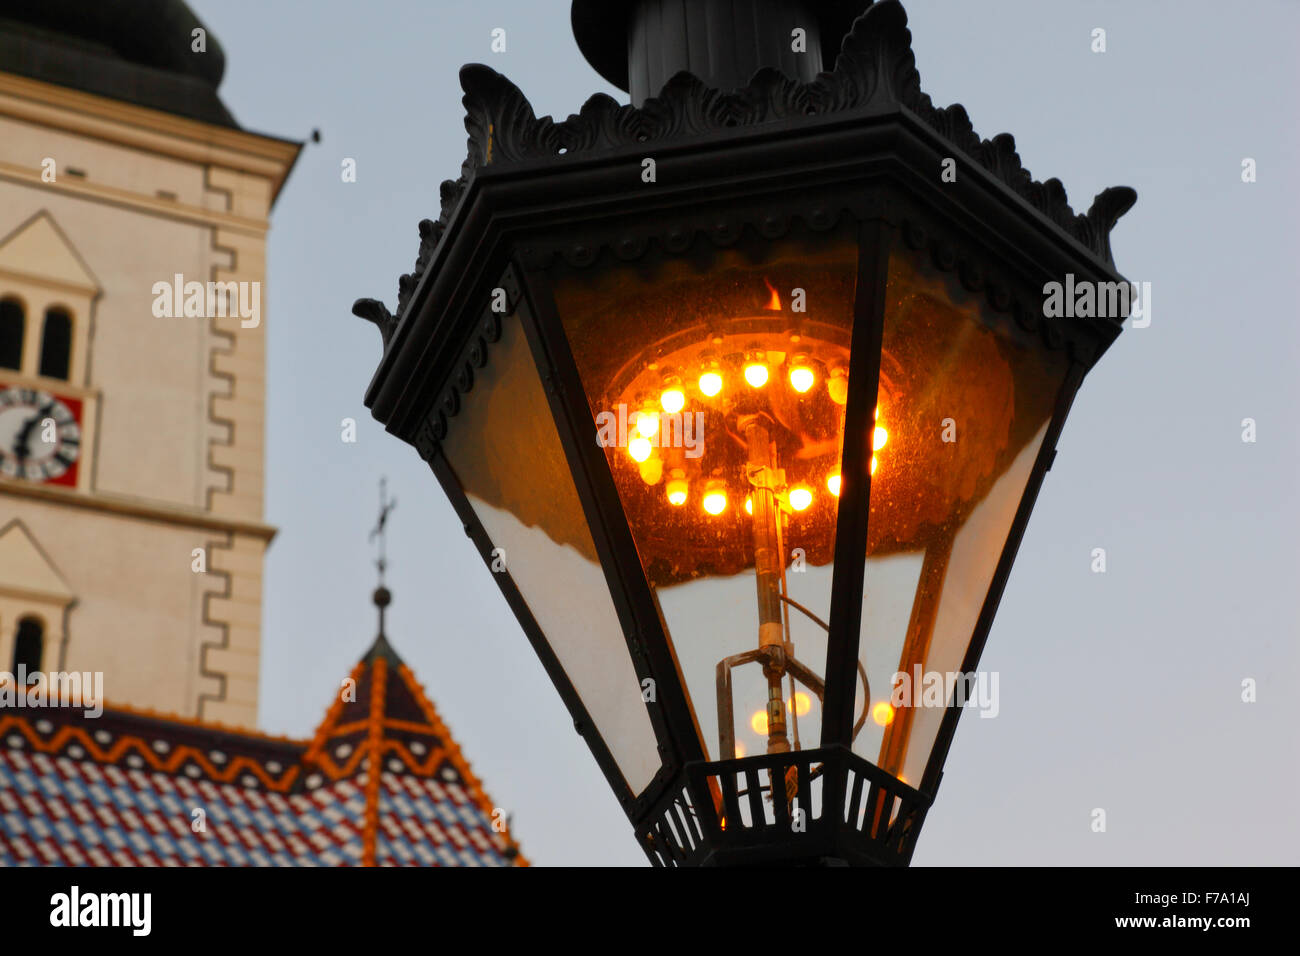 Zagreb Gas lamps (since 1863). There are 217 gas lamps and they have been hand lit for the past 143 years. - Stock Image